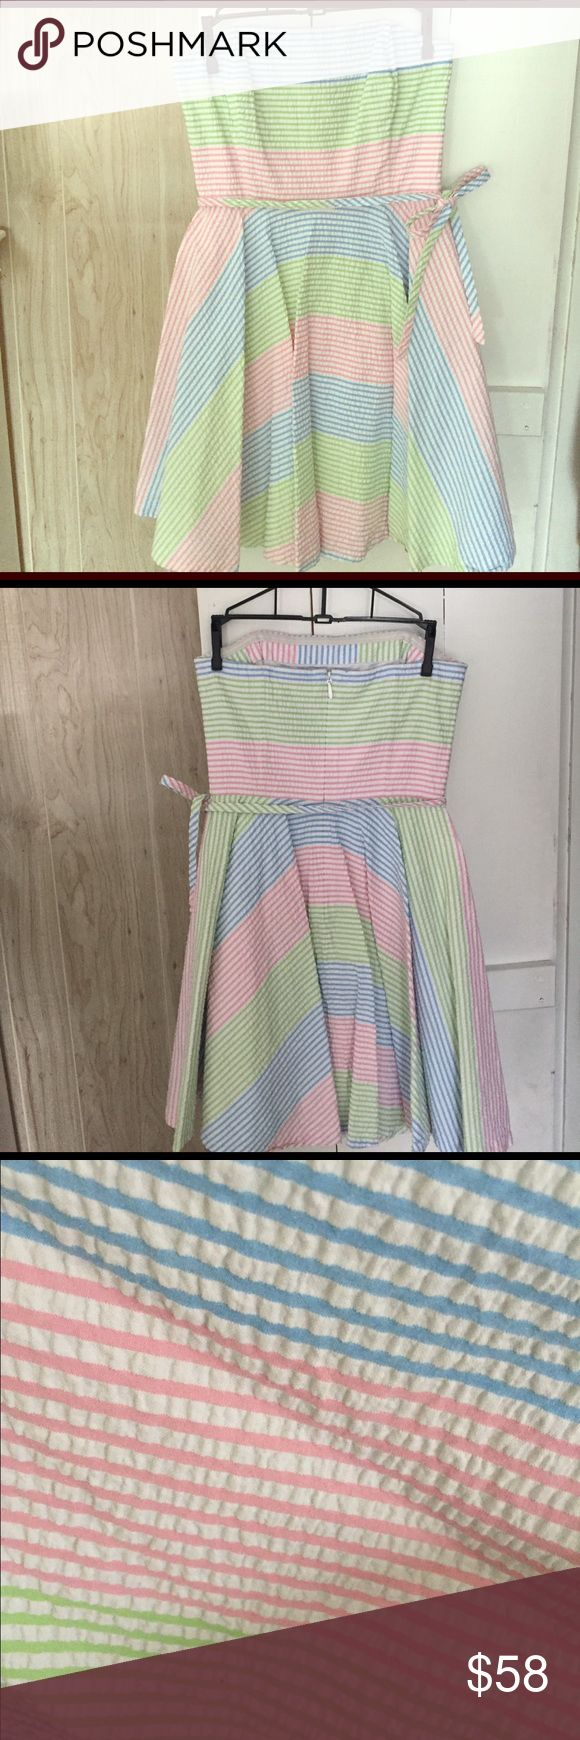 Vineyard Vines Pastel Multi Stripe Strapless Dress This is a gently used Vineyard Vines Pastel Multi Rainbow Stripe Strapless A-line Skirt Dress in size 2. 100% cotton. Seersucker. Has a waist tie with back zipper. Very pretty style and easy to wear dress up for party or dress down for picnic. Length is above the knee. Vineyard Vines Dresses Strapless